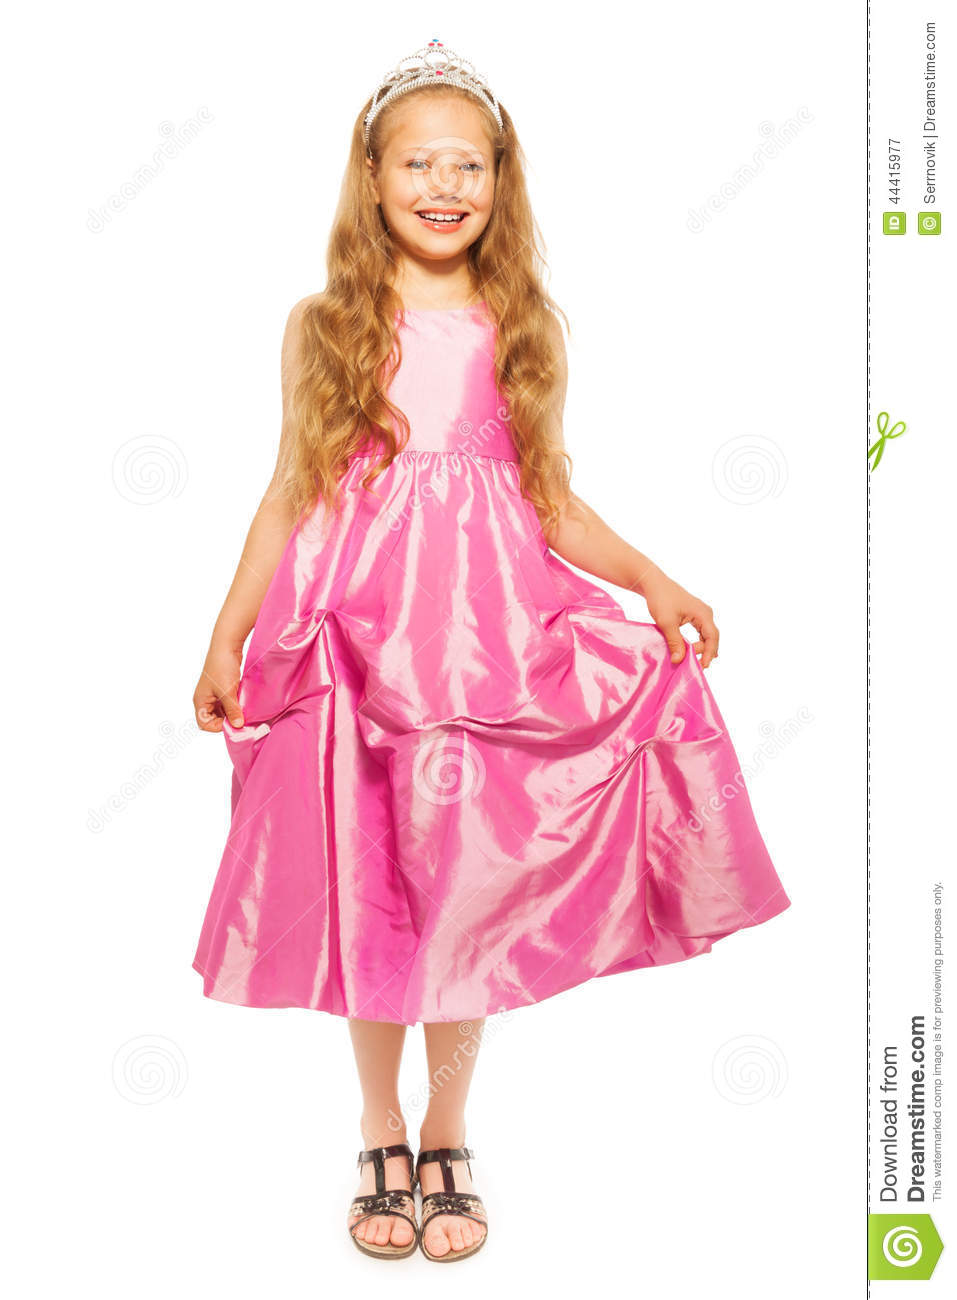 Little Girl In Pink Dress With Princess Crown Stock Photo - Image ...